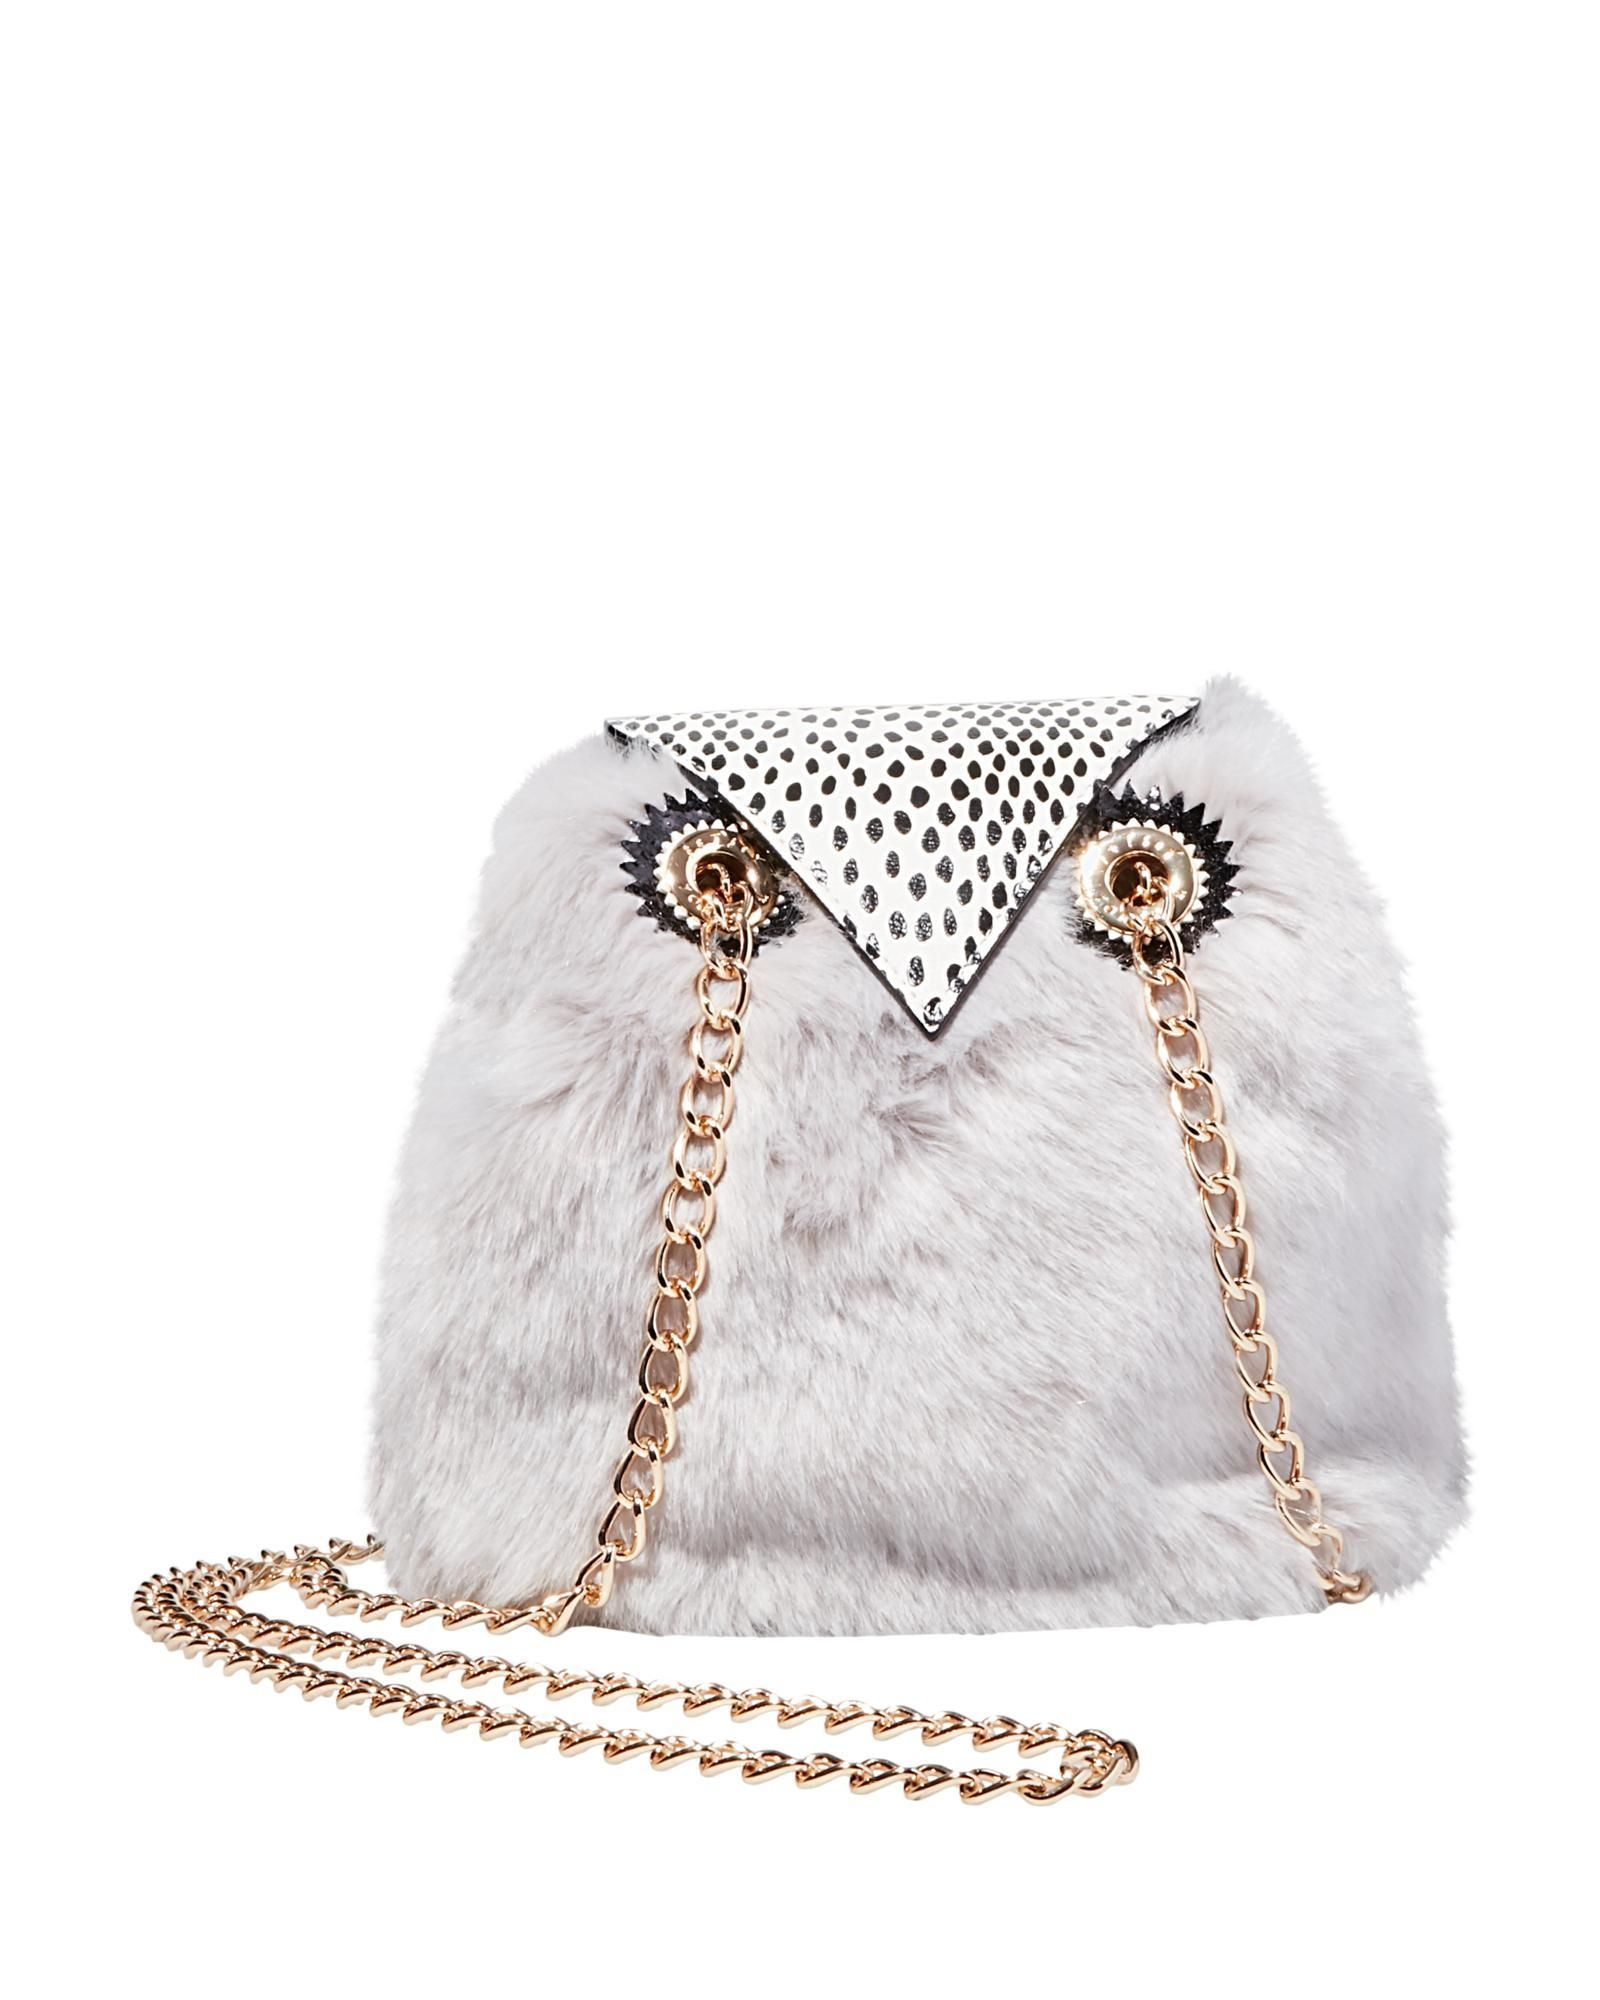 Betsey Johnson Kitsch Give A Hoot Owl Crossbody Bag   Products in ... 516880c5c4